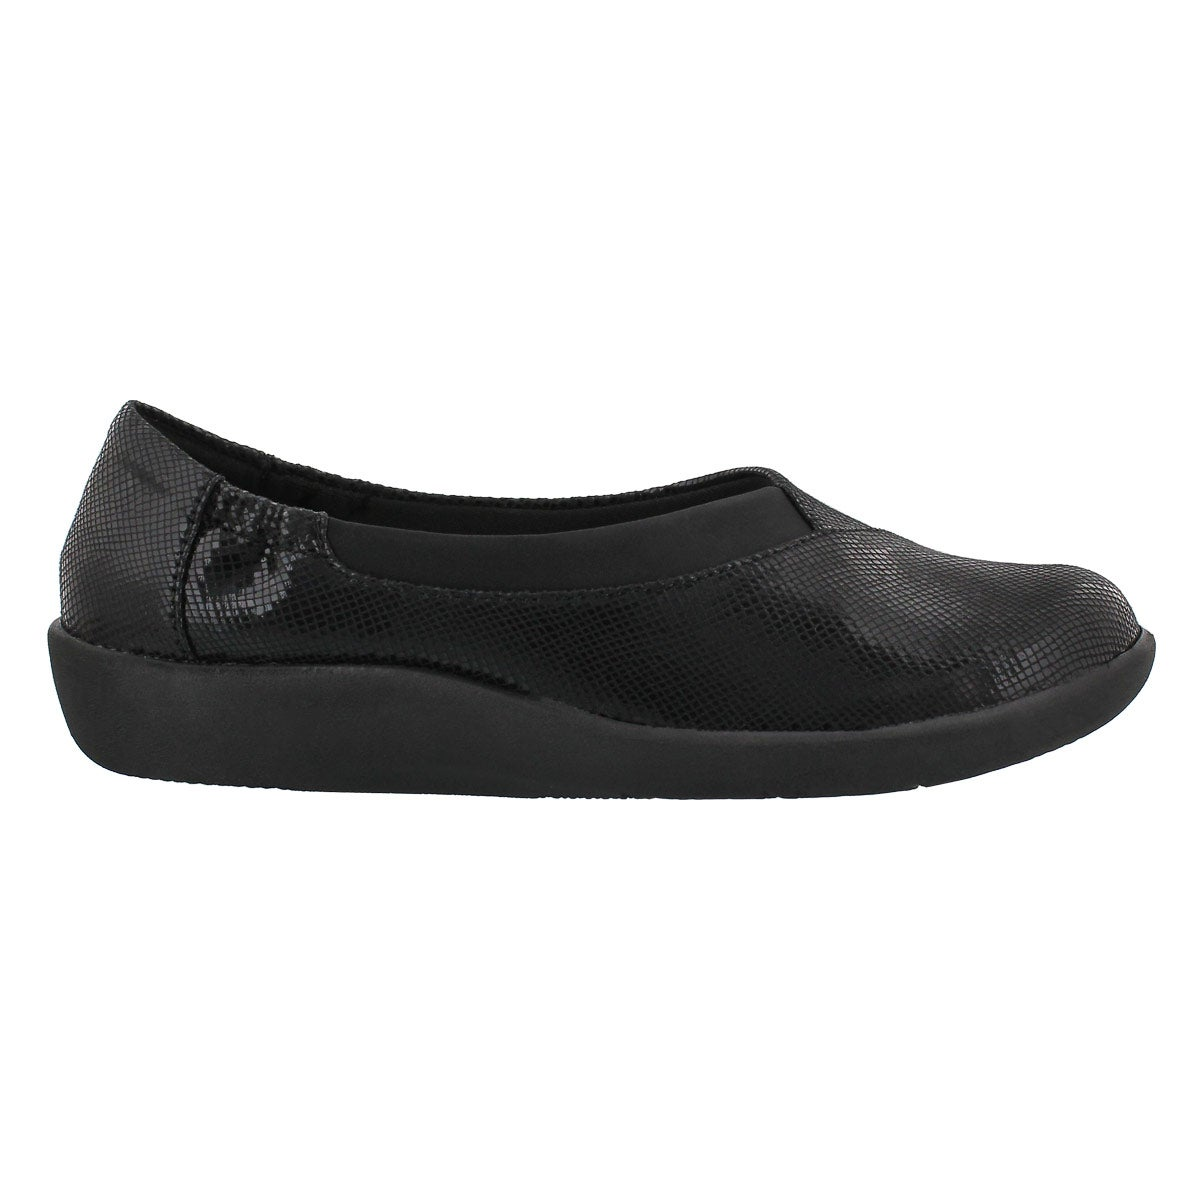 Lds Sillian Jetay blk mini dmnd slip on